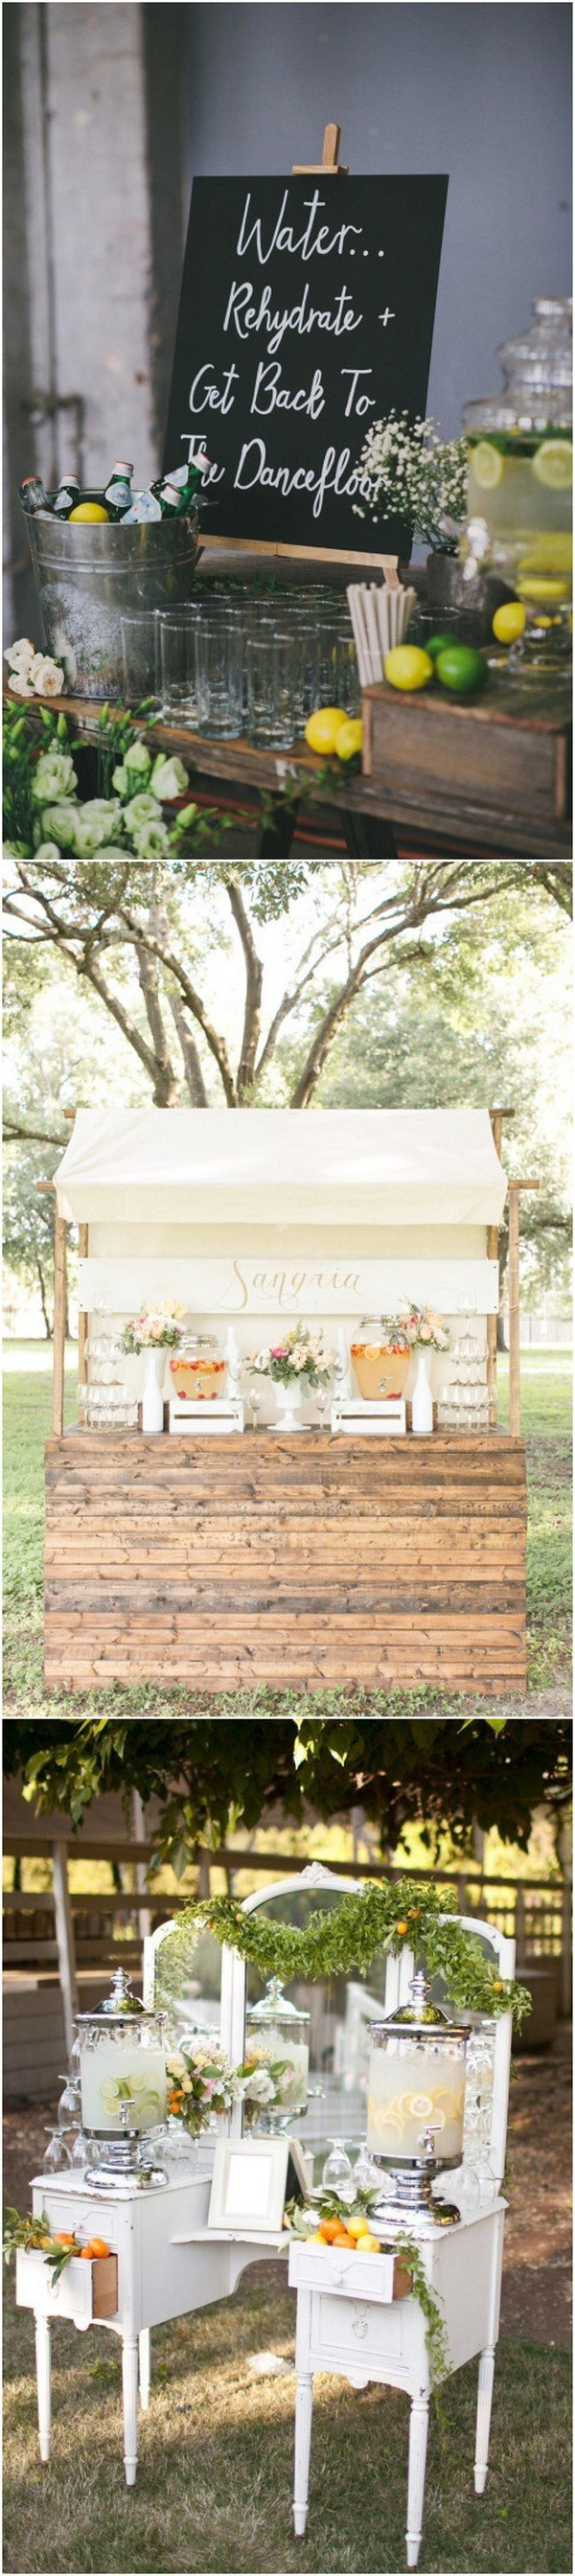 rustic wedding drink station ideas